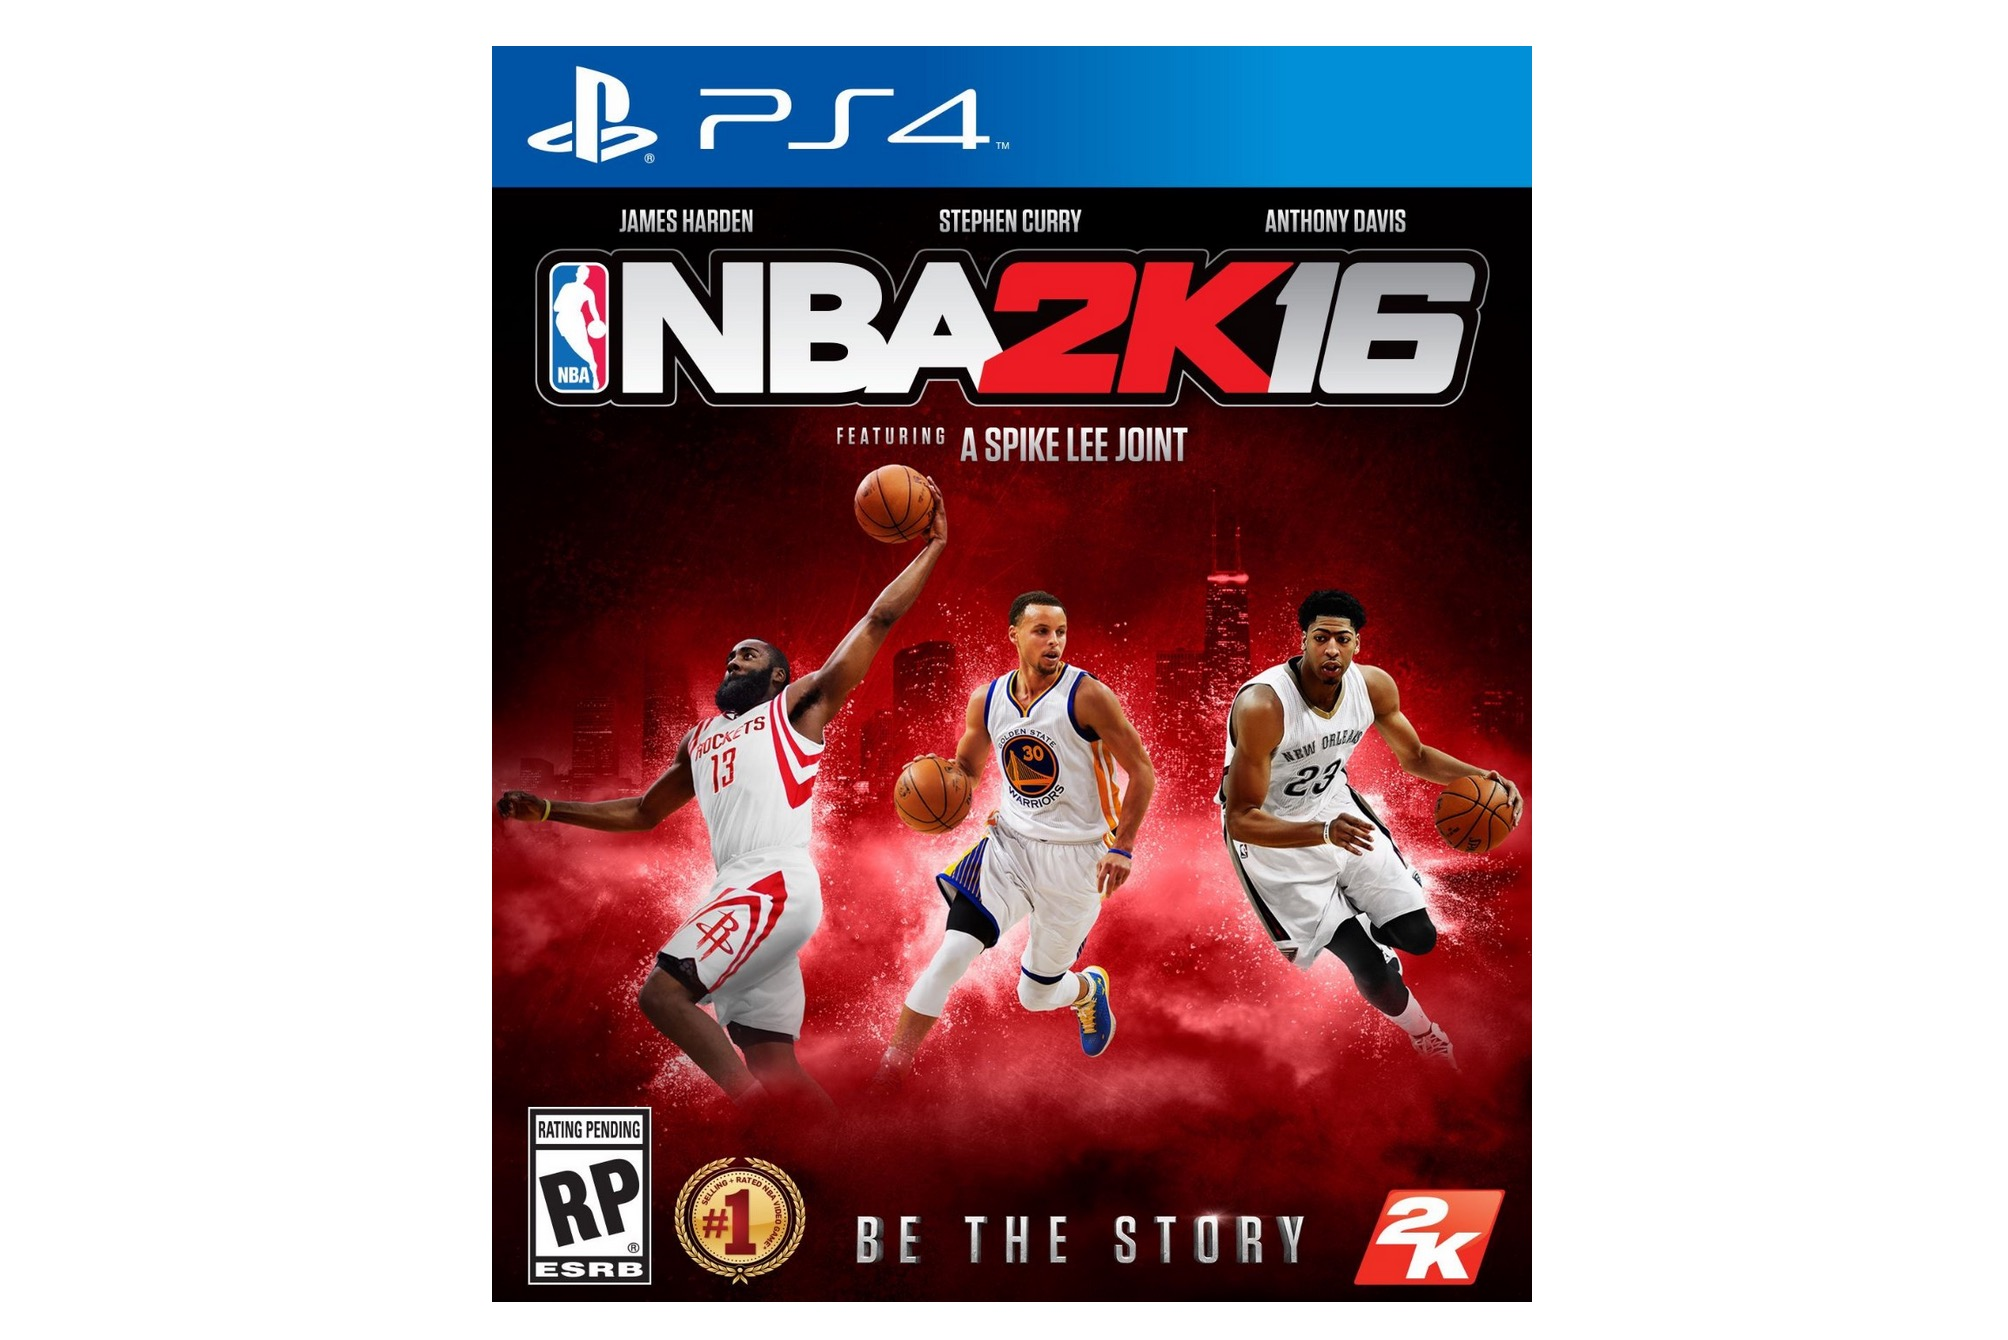 Which Edition of NBA 2K16 Should You Buy?